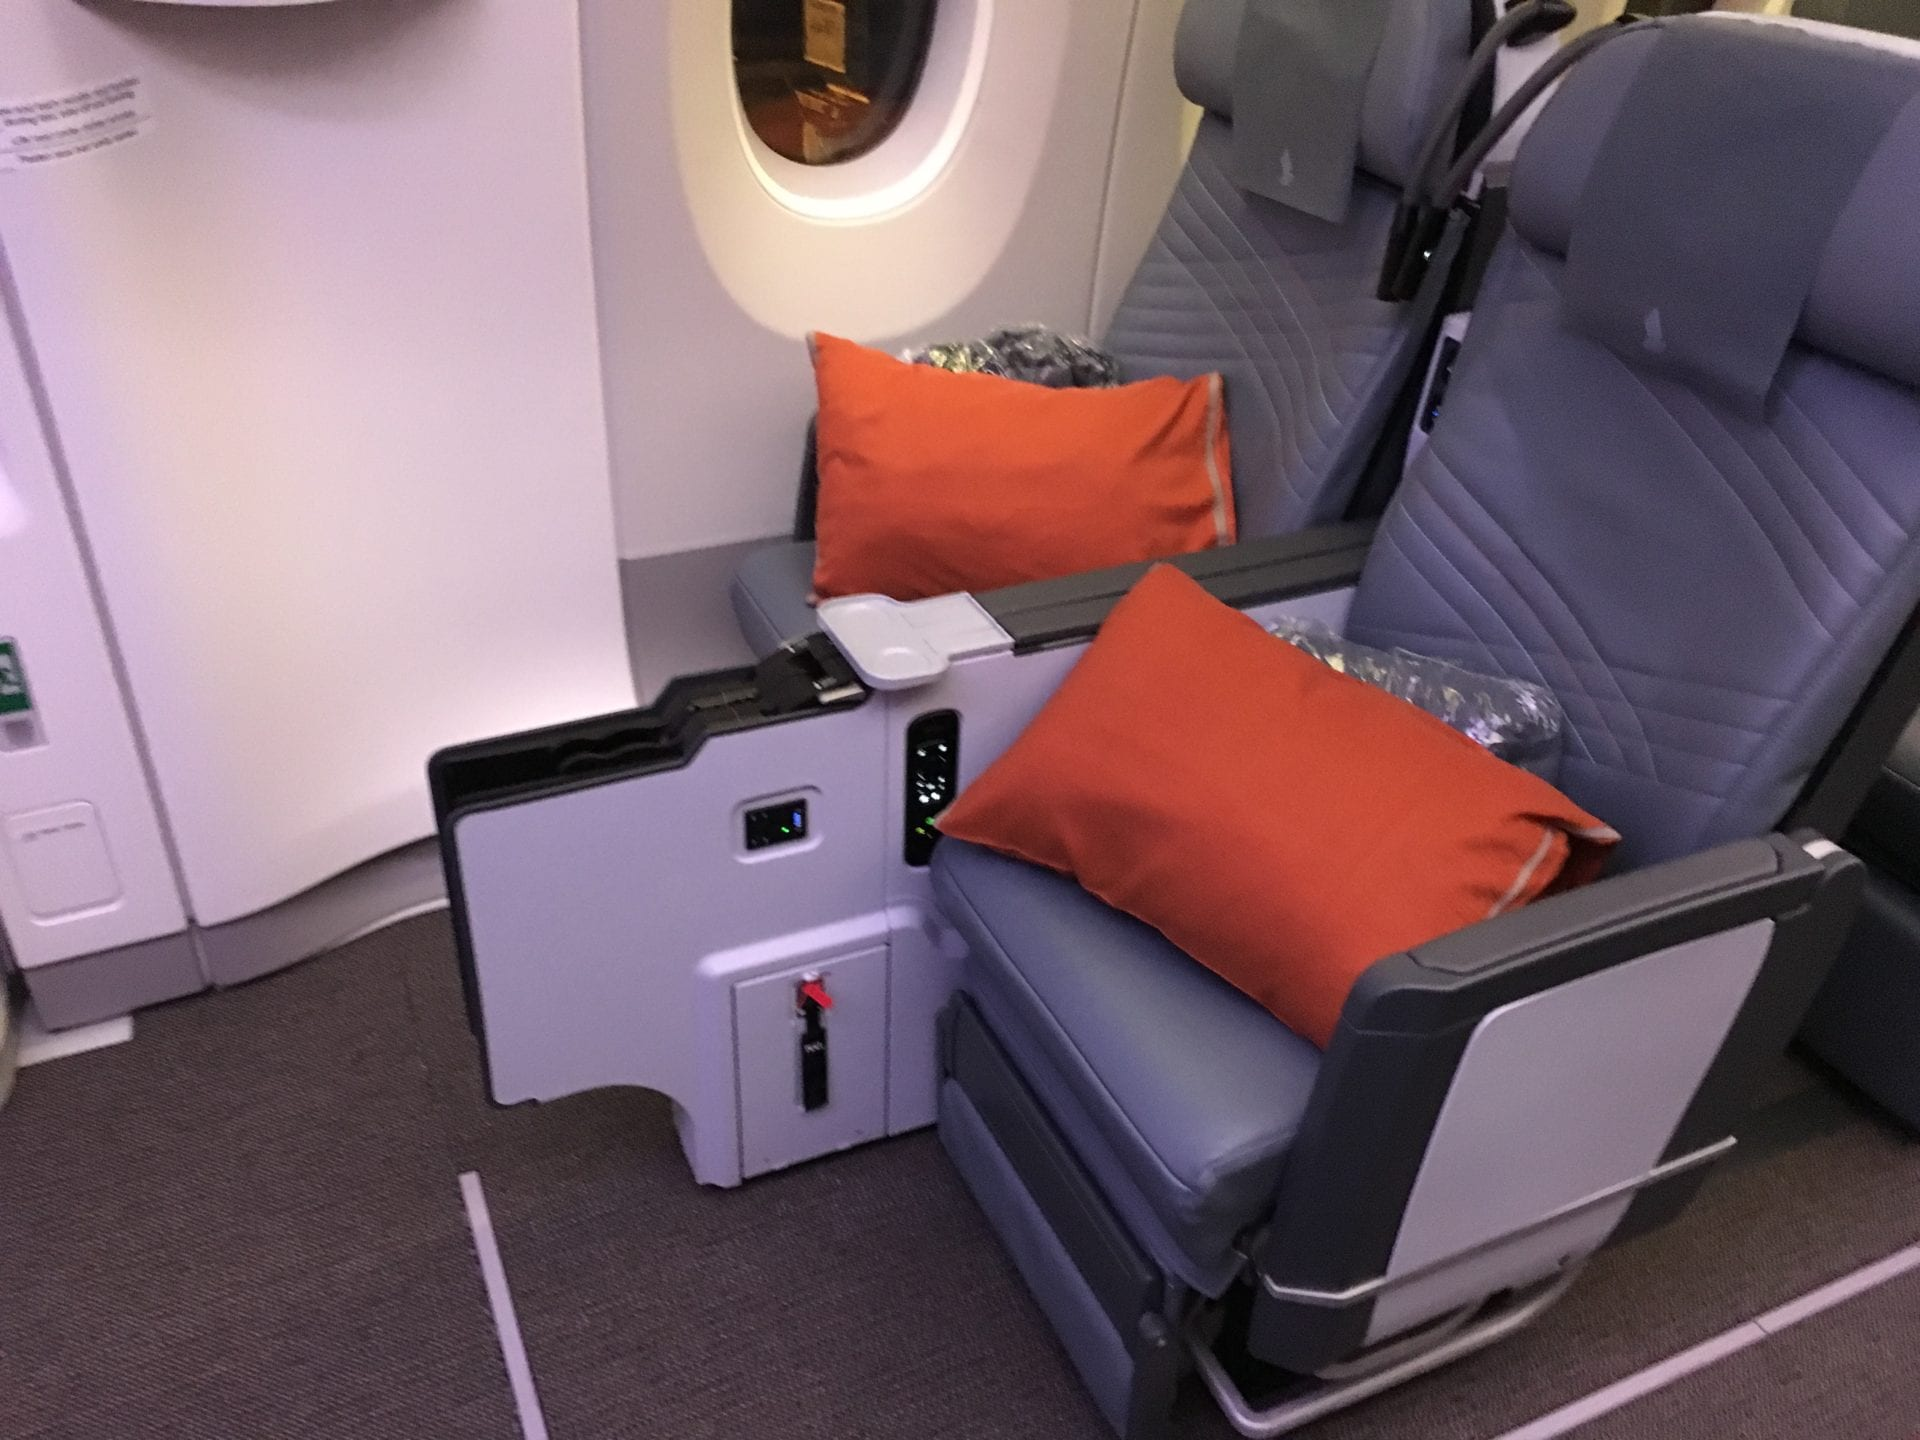 Singapore Airlines Premium Economy Class Ultralangstrecke Notausgang